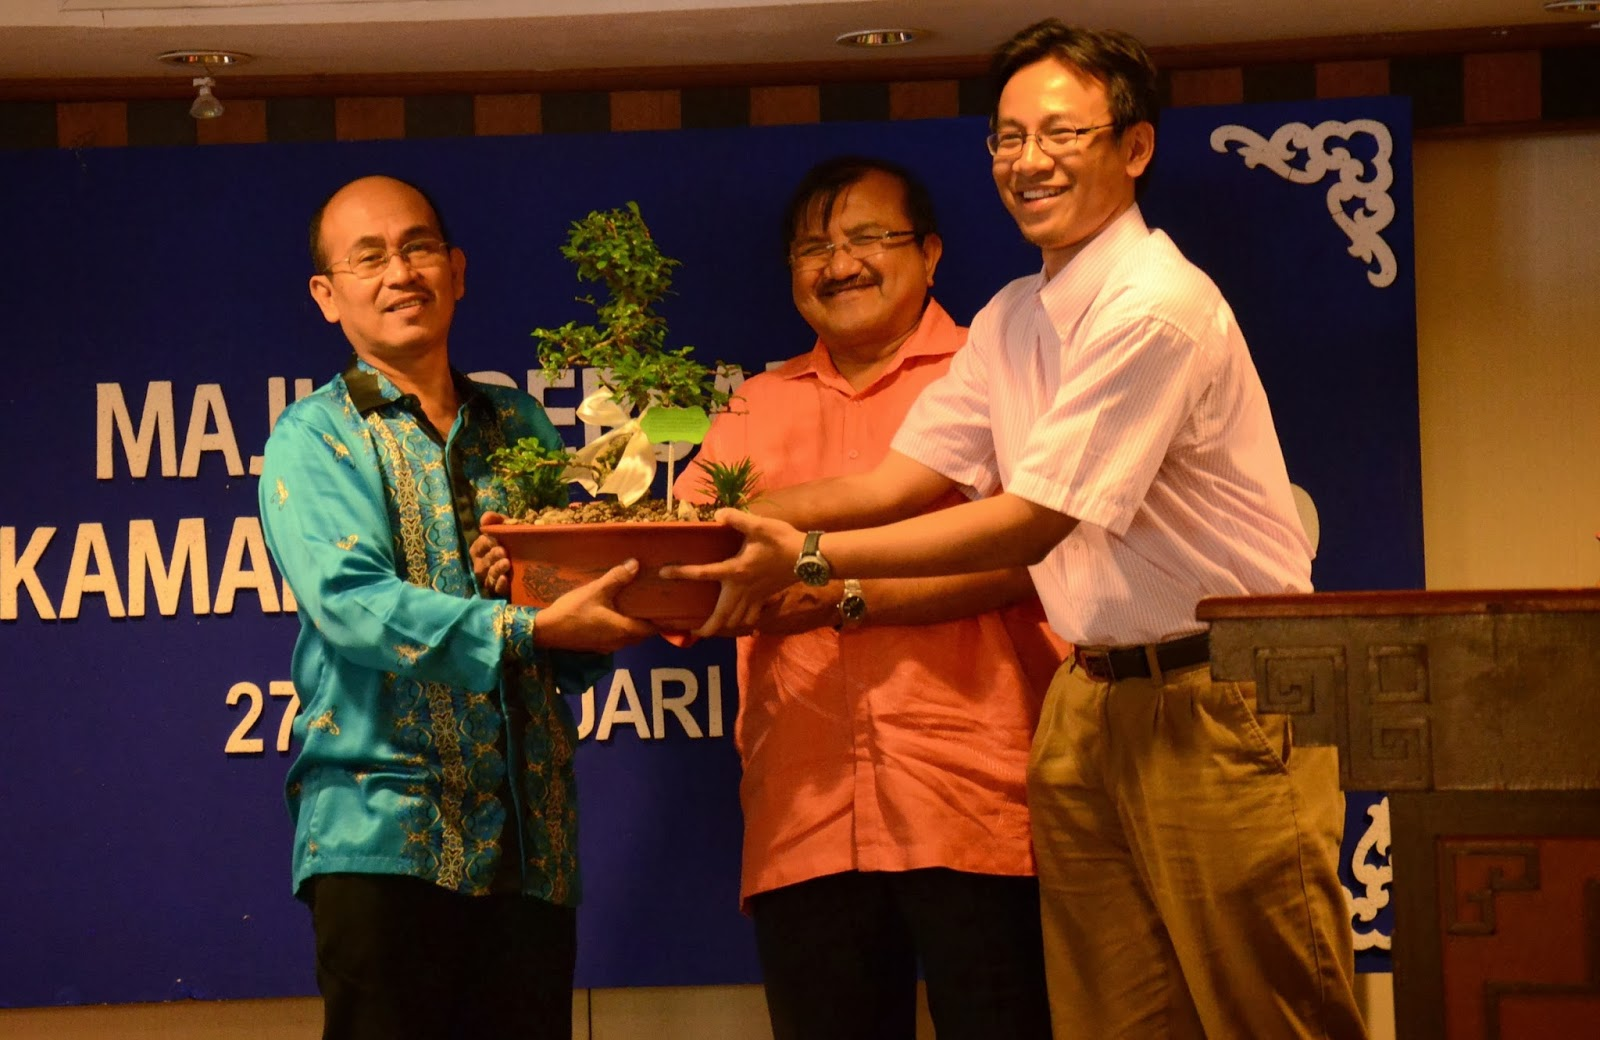 NEWS Senior Lecturer Kamaruzaman Abd Rasid Retires After 3 Decades